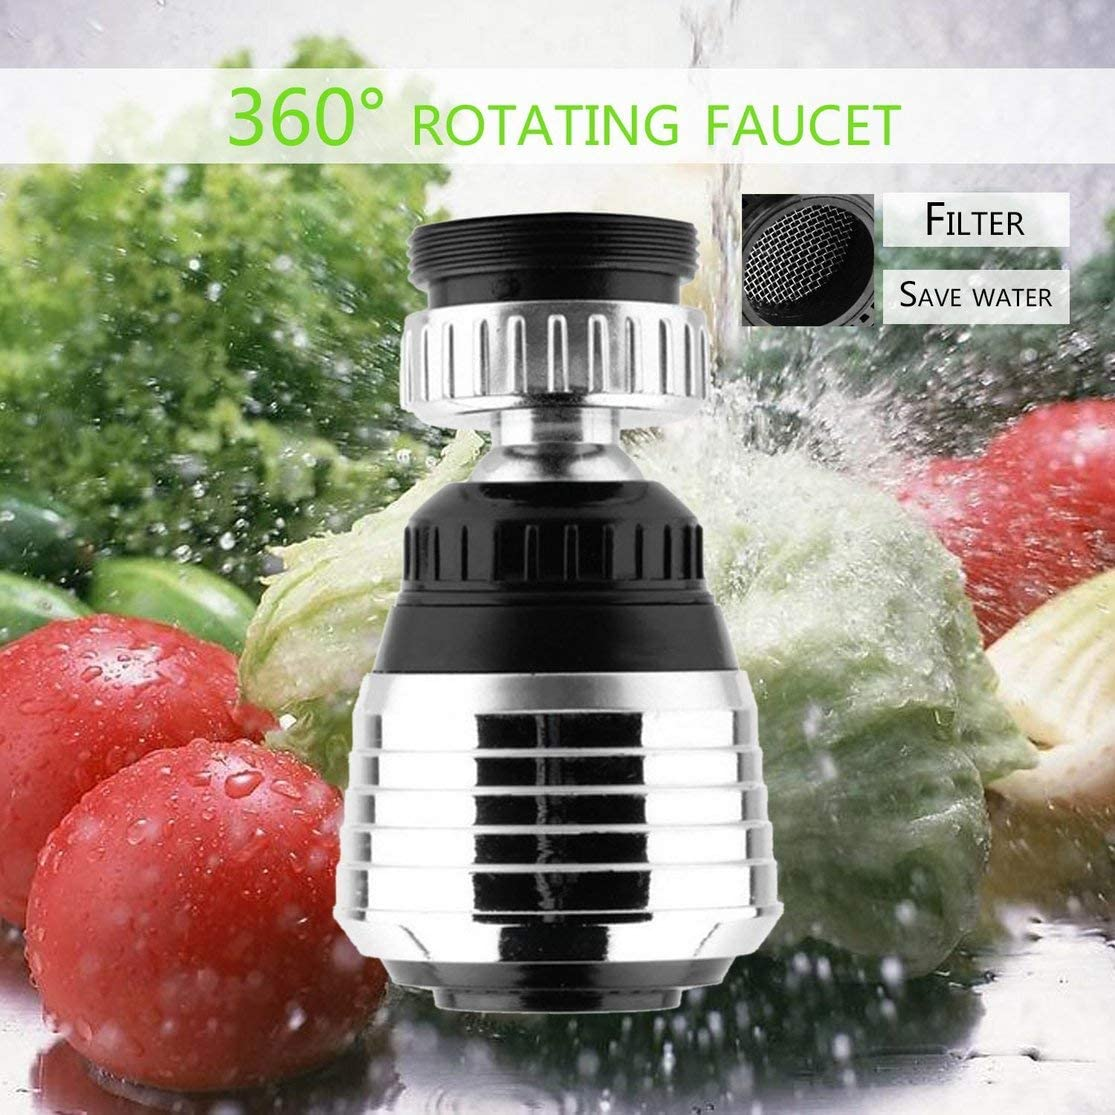 Licini 360/°Rotatable Faucet Swivel End Diffuser Water Saving Adapter Device Anti-Splash Shower Bath Valve Filter for Home Use